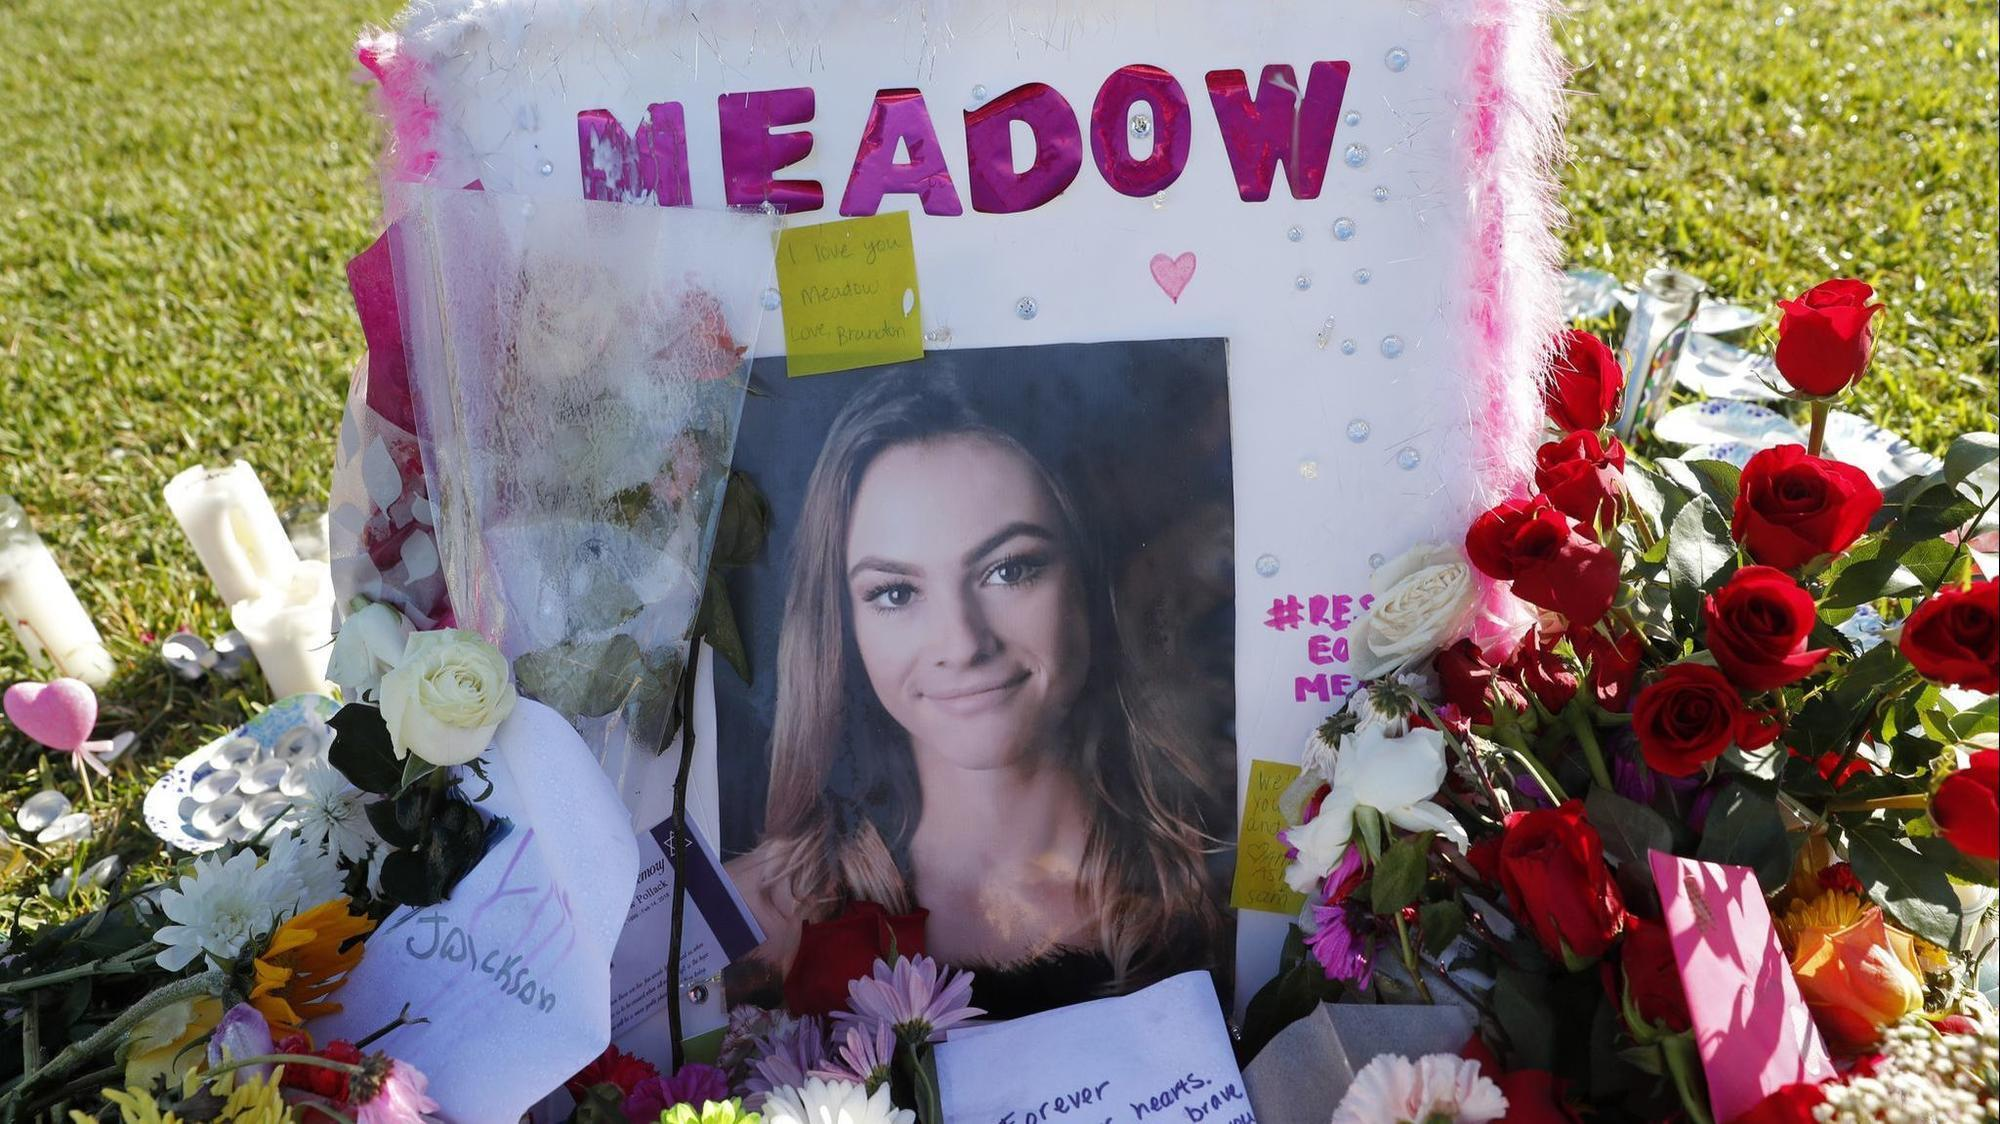 Saturdays Ride For Meadow Fundraiser To Honor Parkland Shooting Victim Sun Sentinel